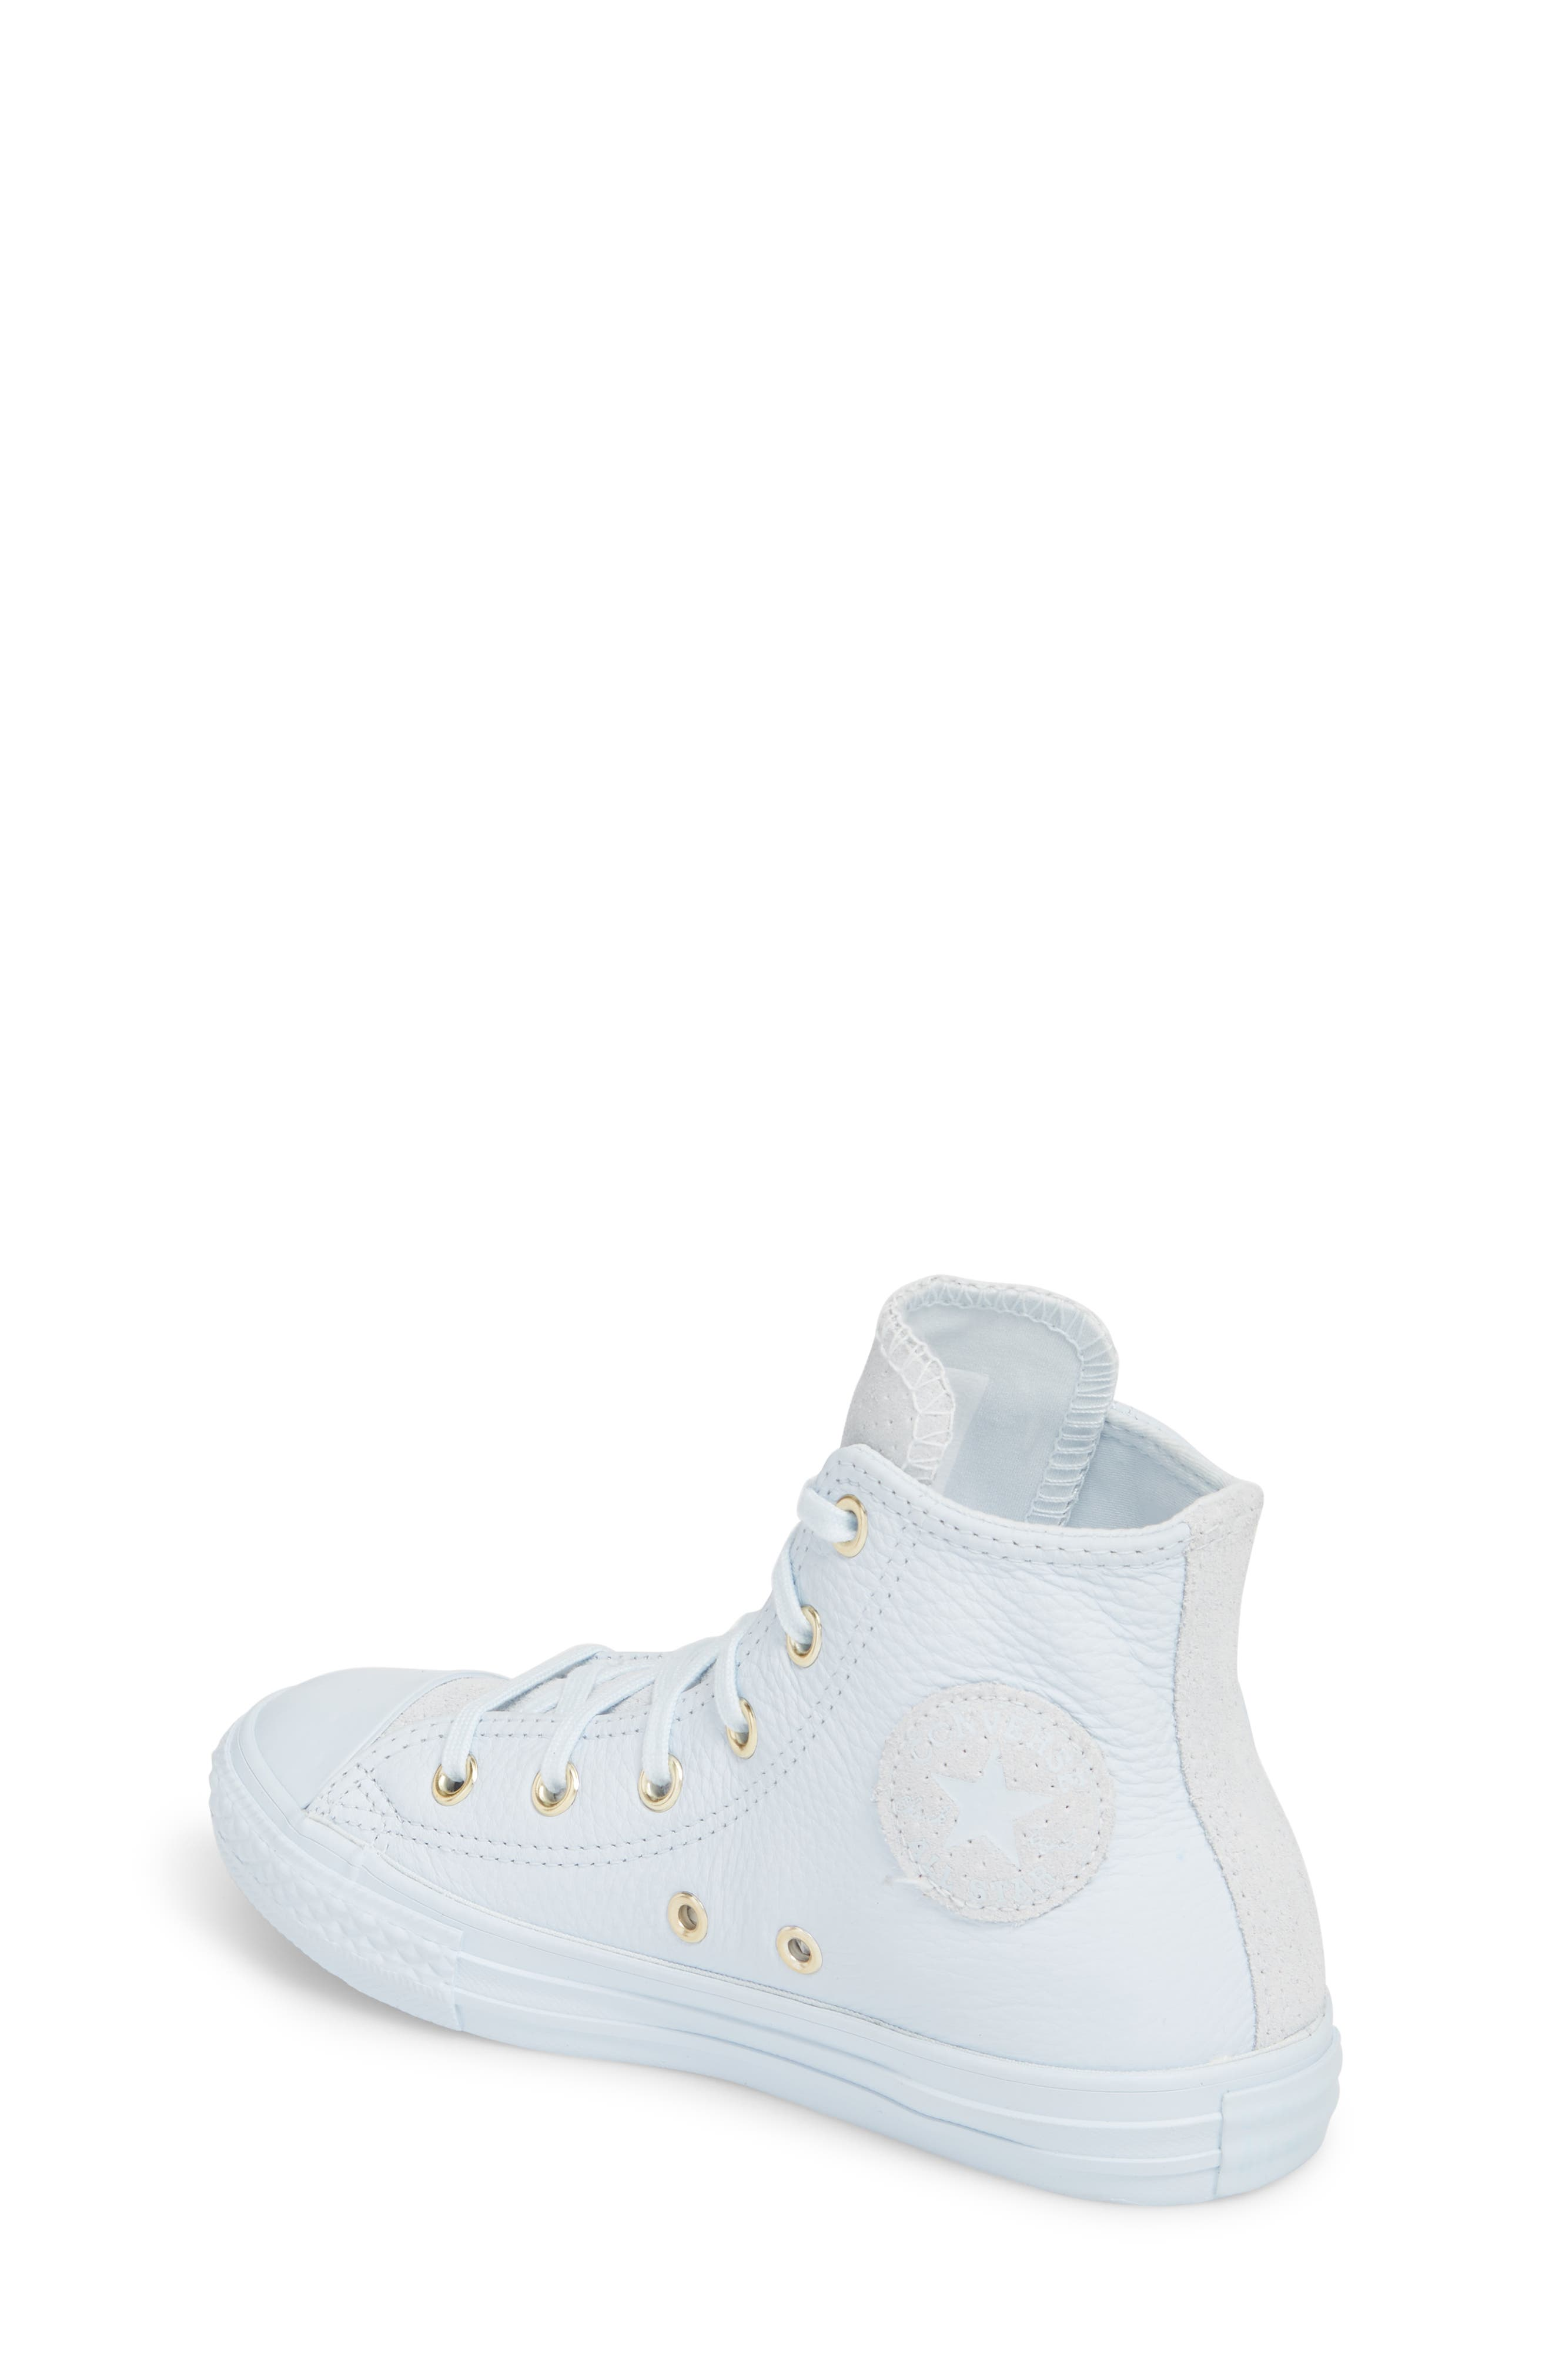 Chuck Taylor<sup>®</sup> All Star<sup>®</sup> Mono High Top Sneaker,                             Alternate thumbnail 2, color,                             454